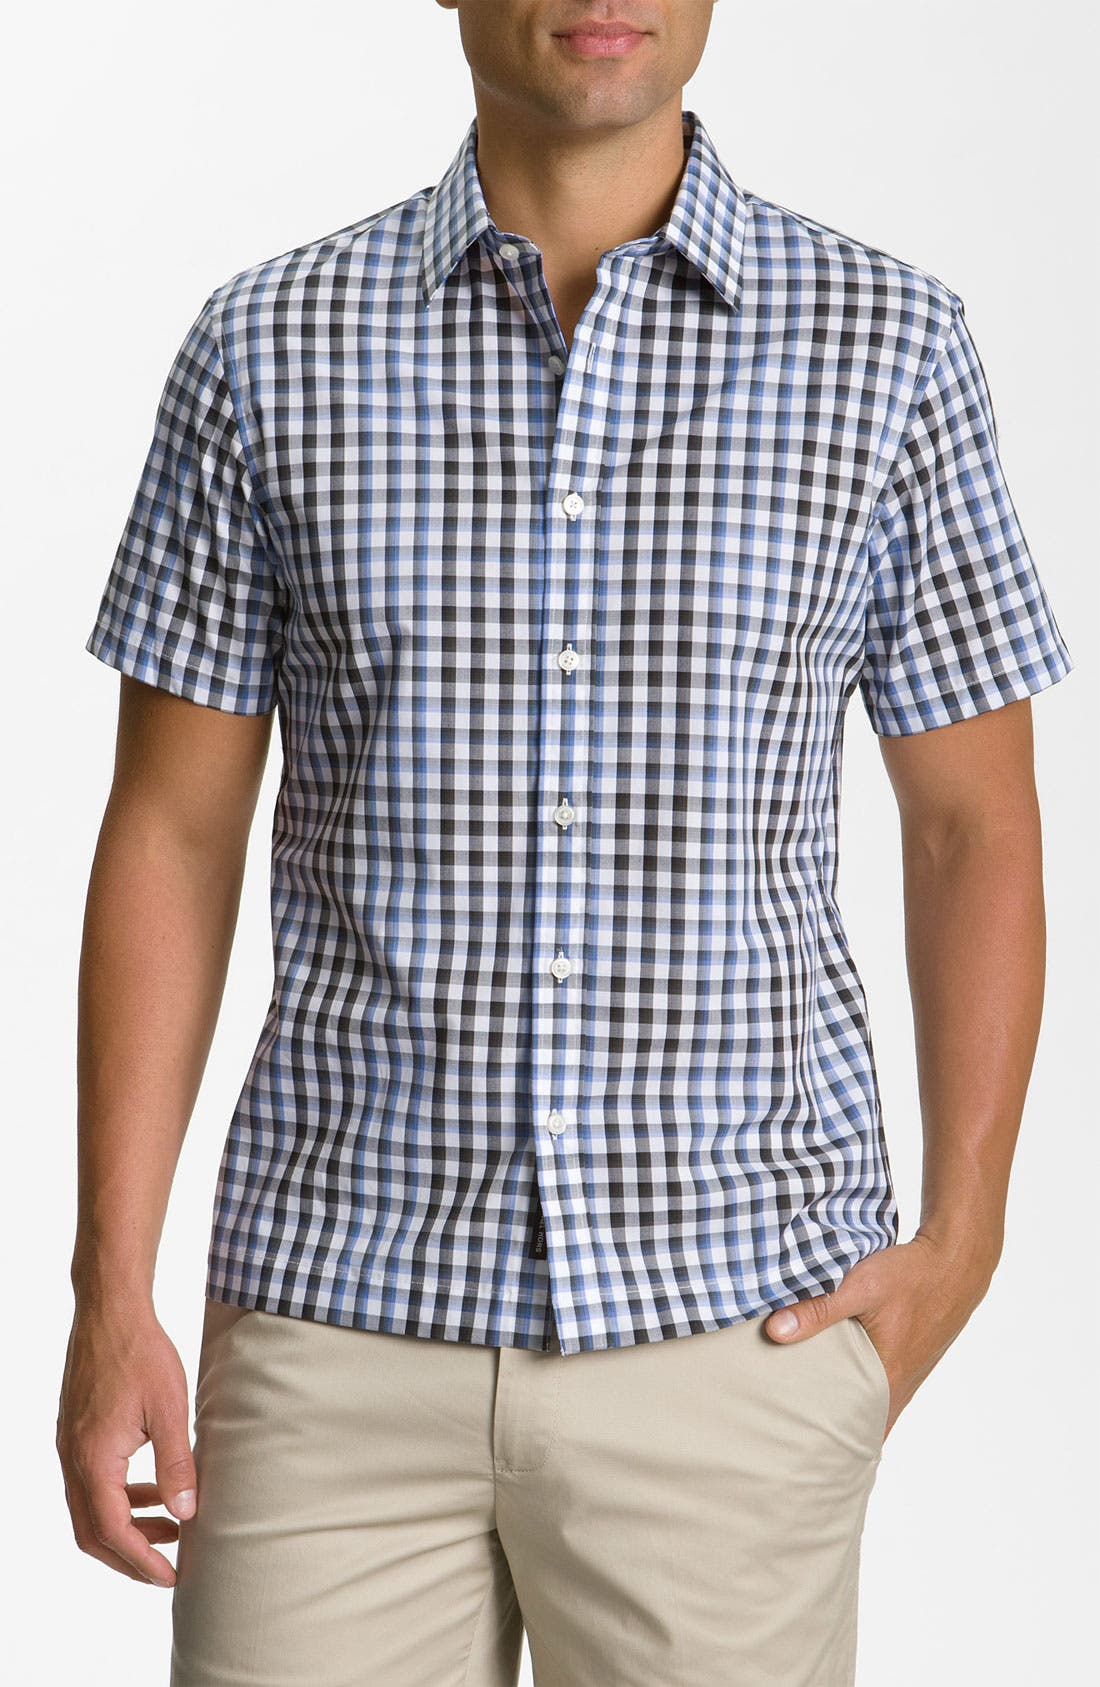 Alternate Image 1 Selected - Michael Kors 'Nils' Check Plaid Woven Shirt